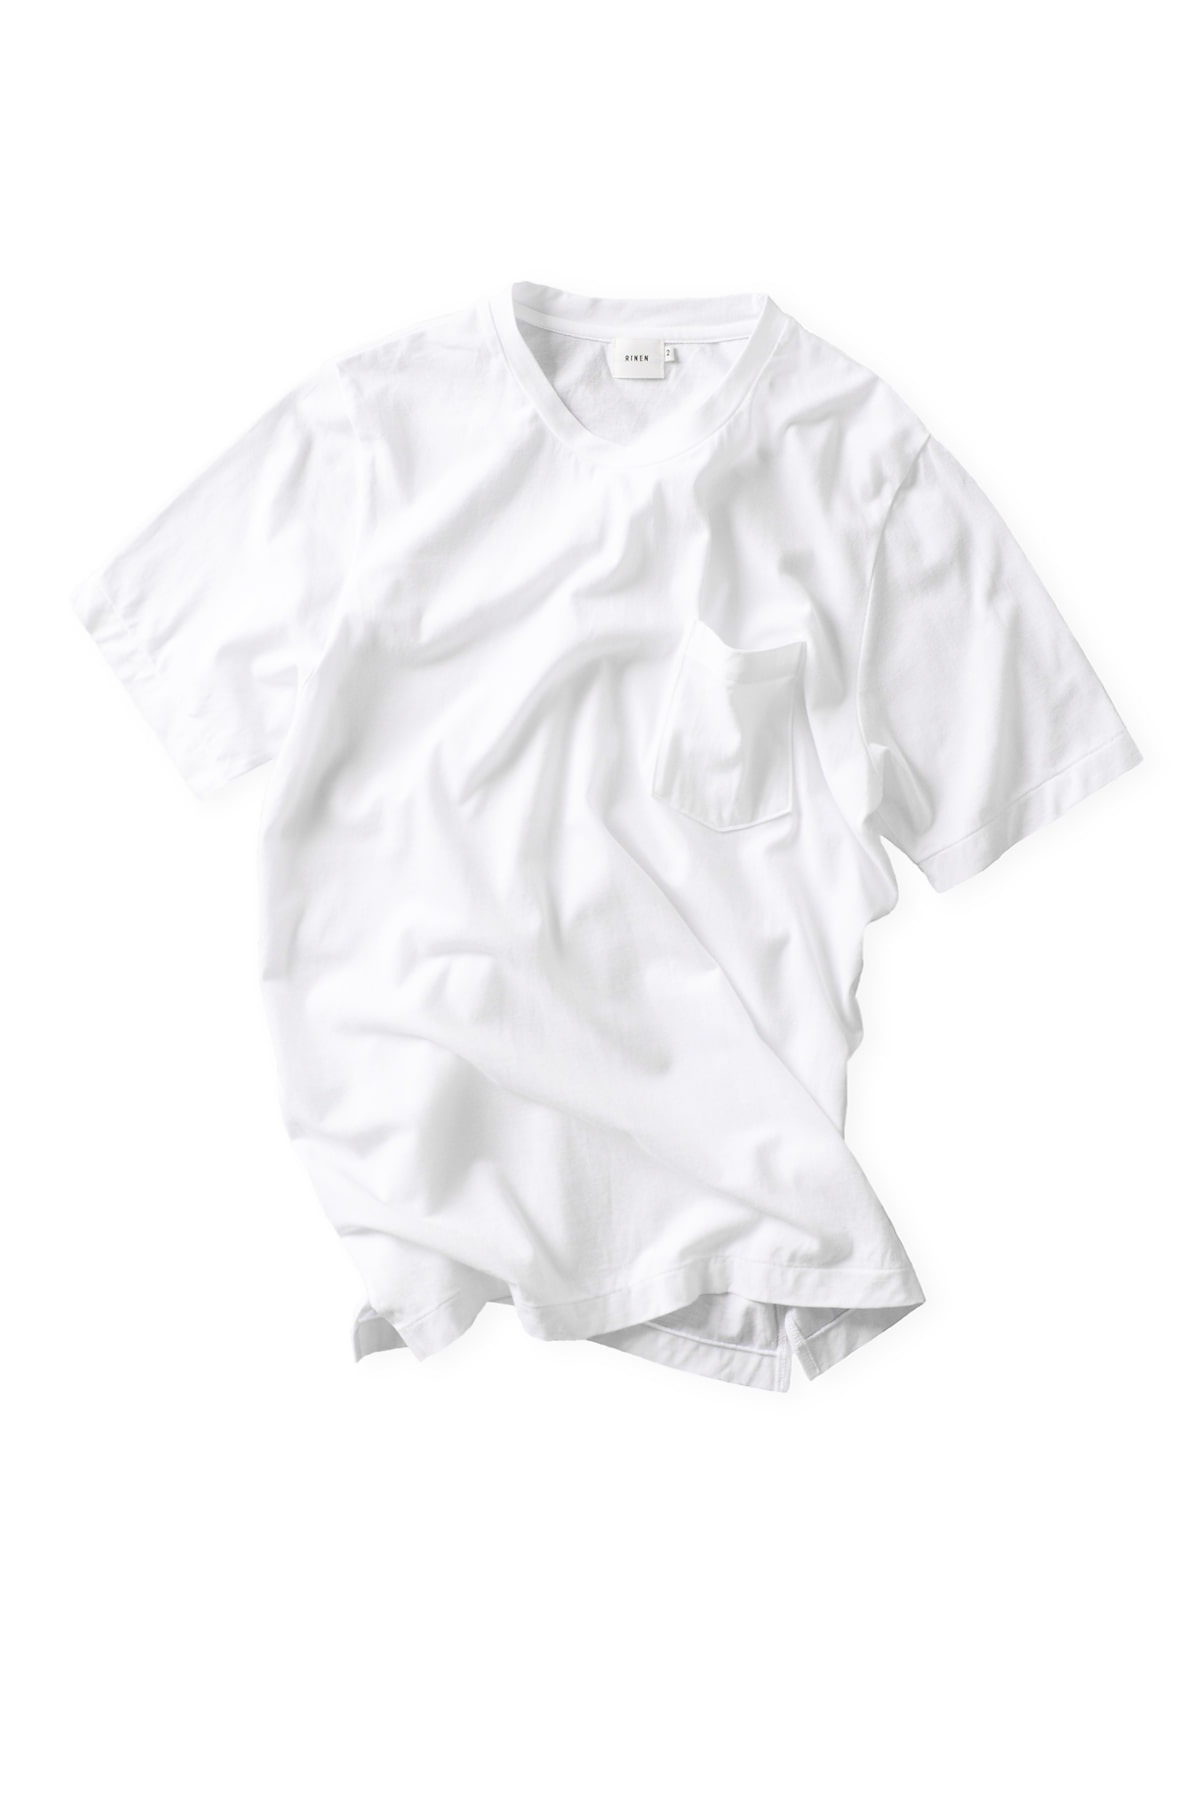 RINEN : Short Sleeved Crewneck 14807 (White)